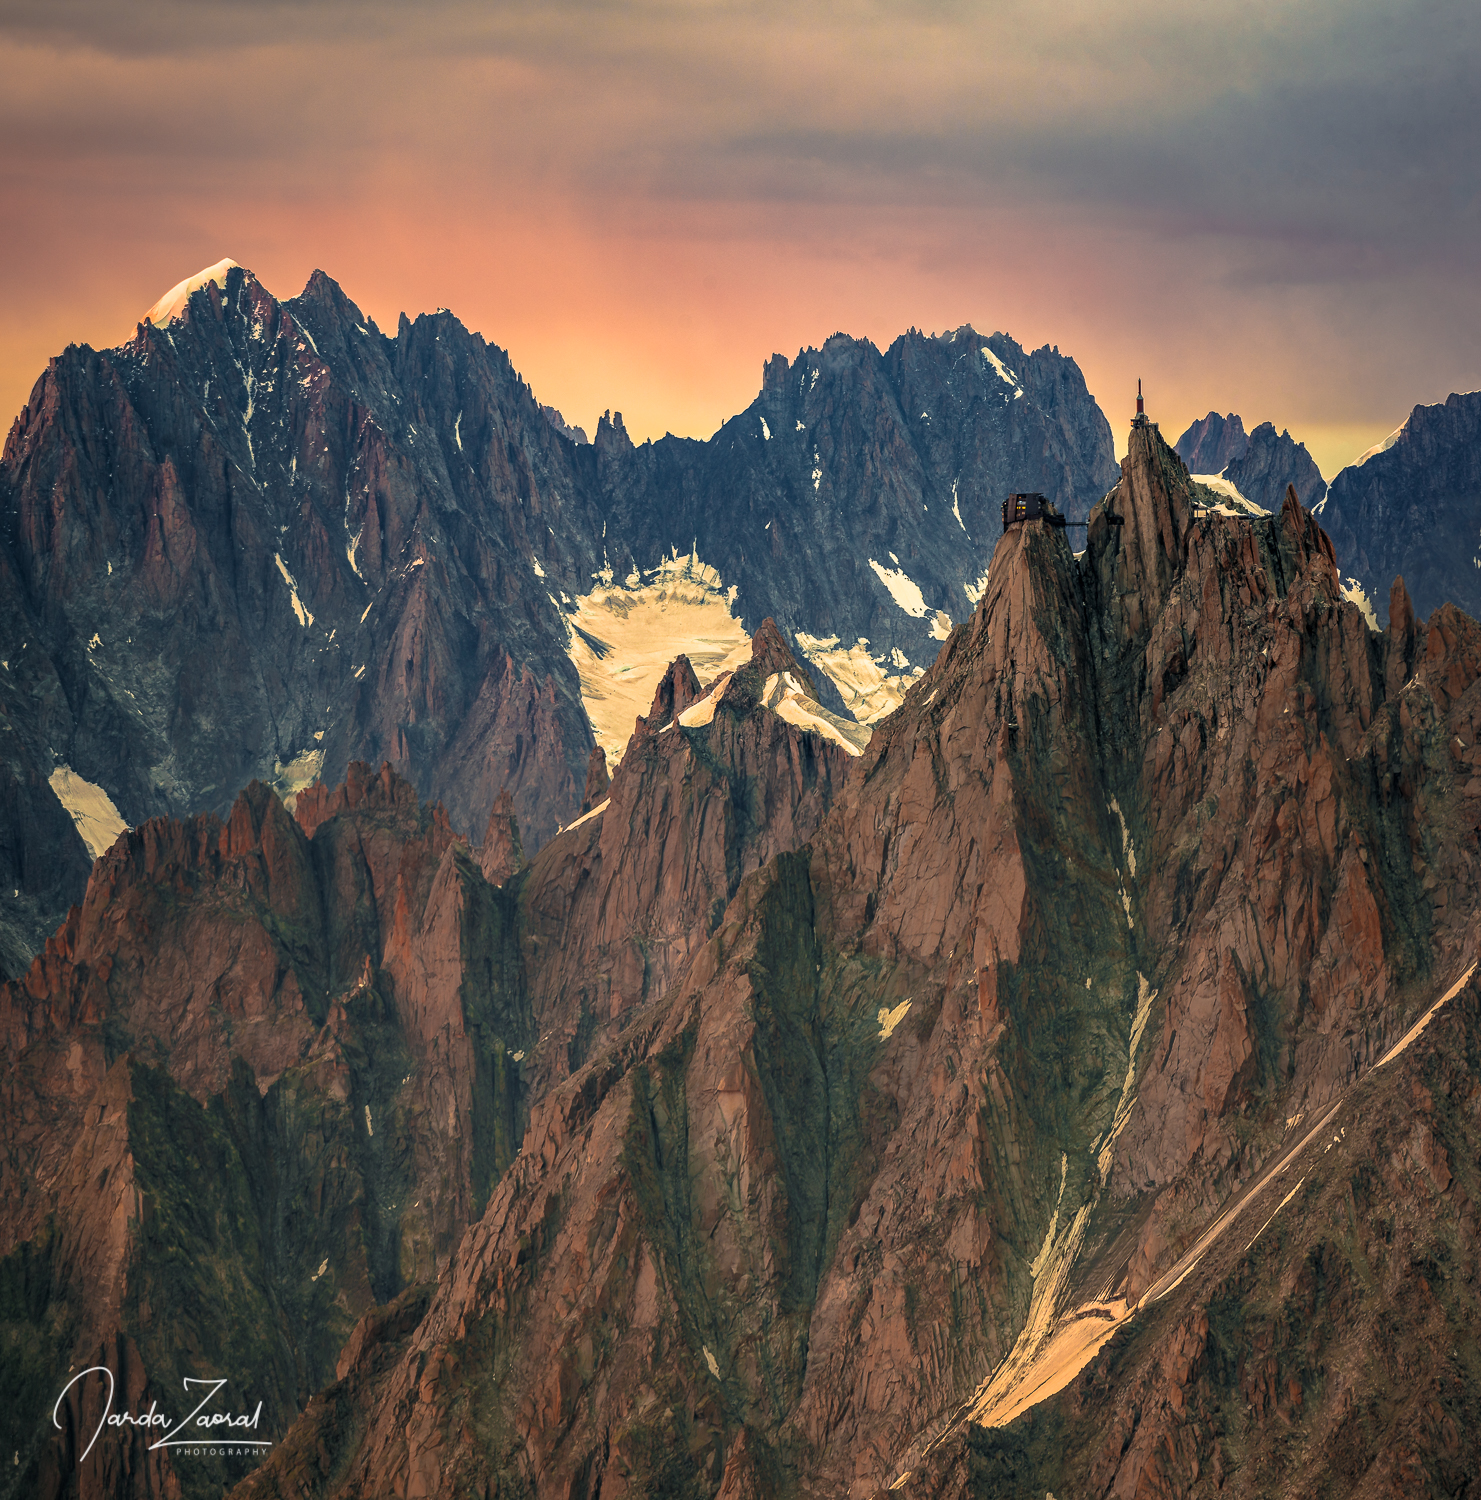 Aiguille du Midi viewed from the Gouter Hut during sunset